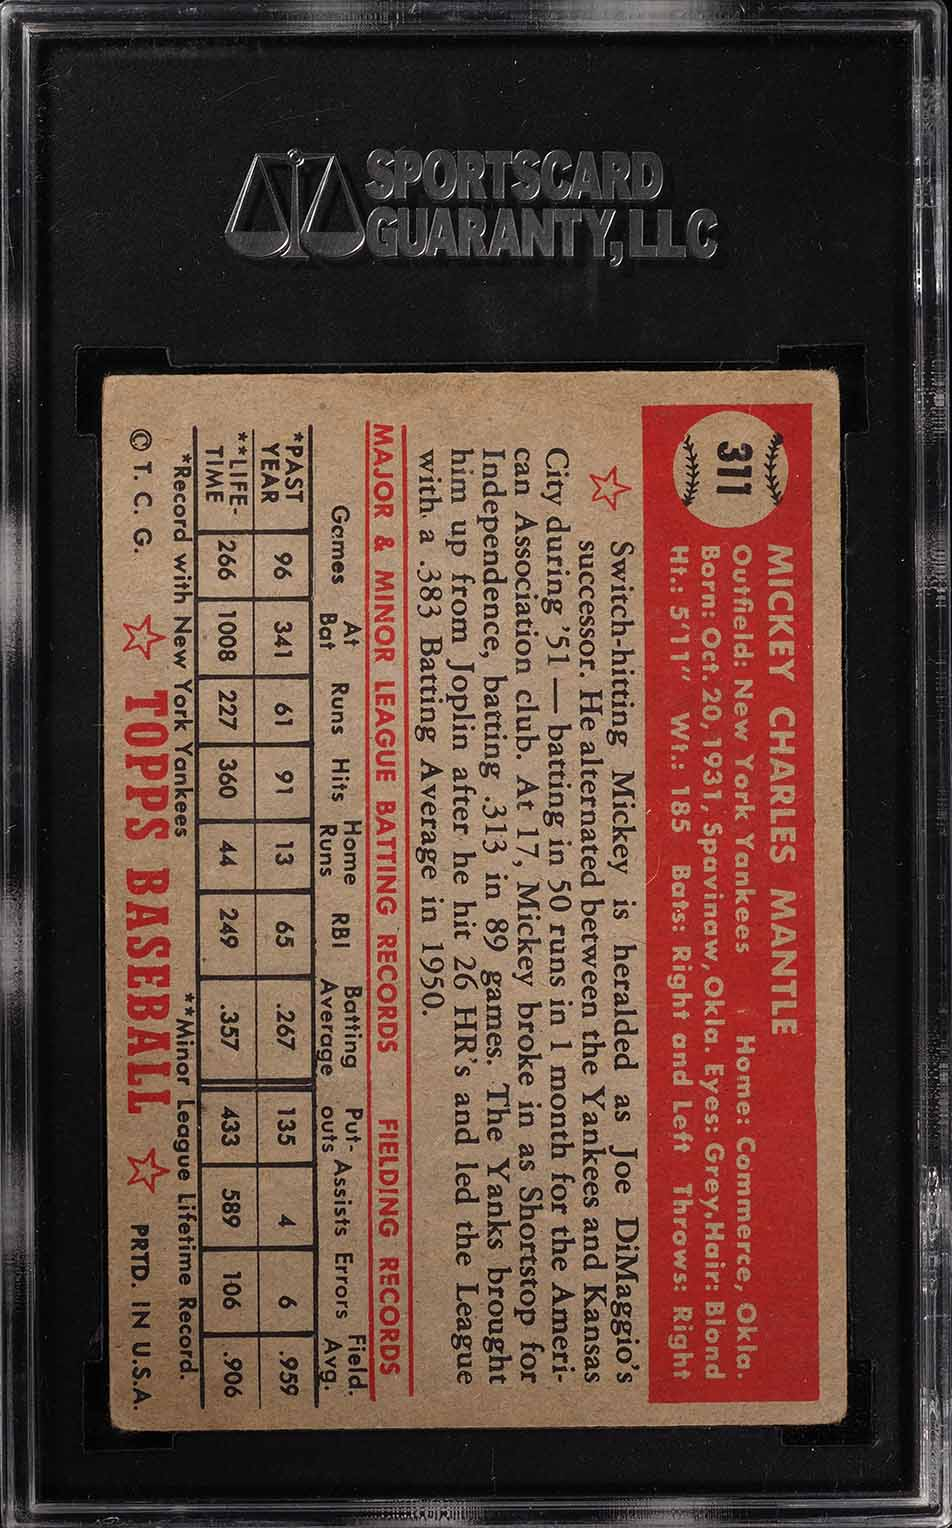 1952 Topps Mickey Mantle #311 SGC 2.5 GD+ (PWCC) - Image 2